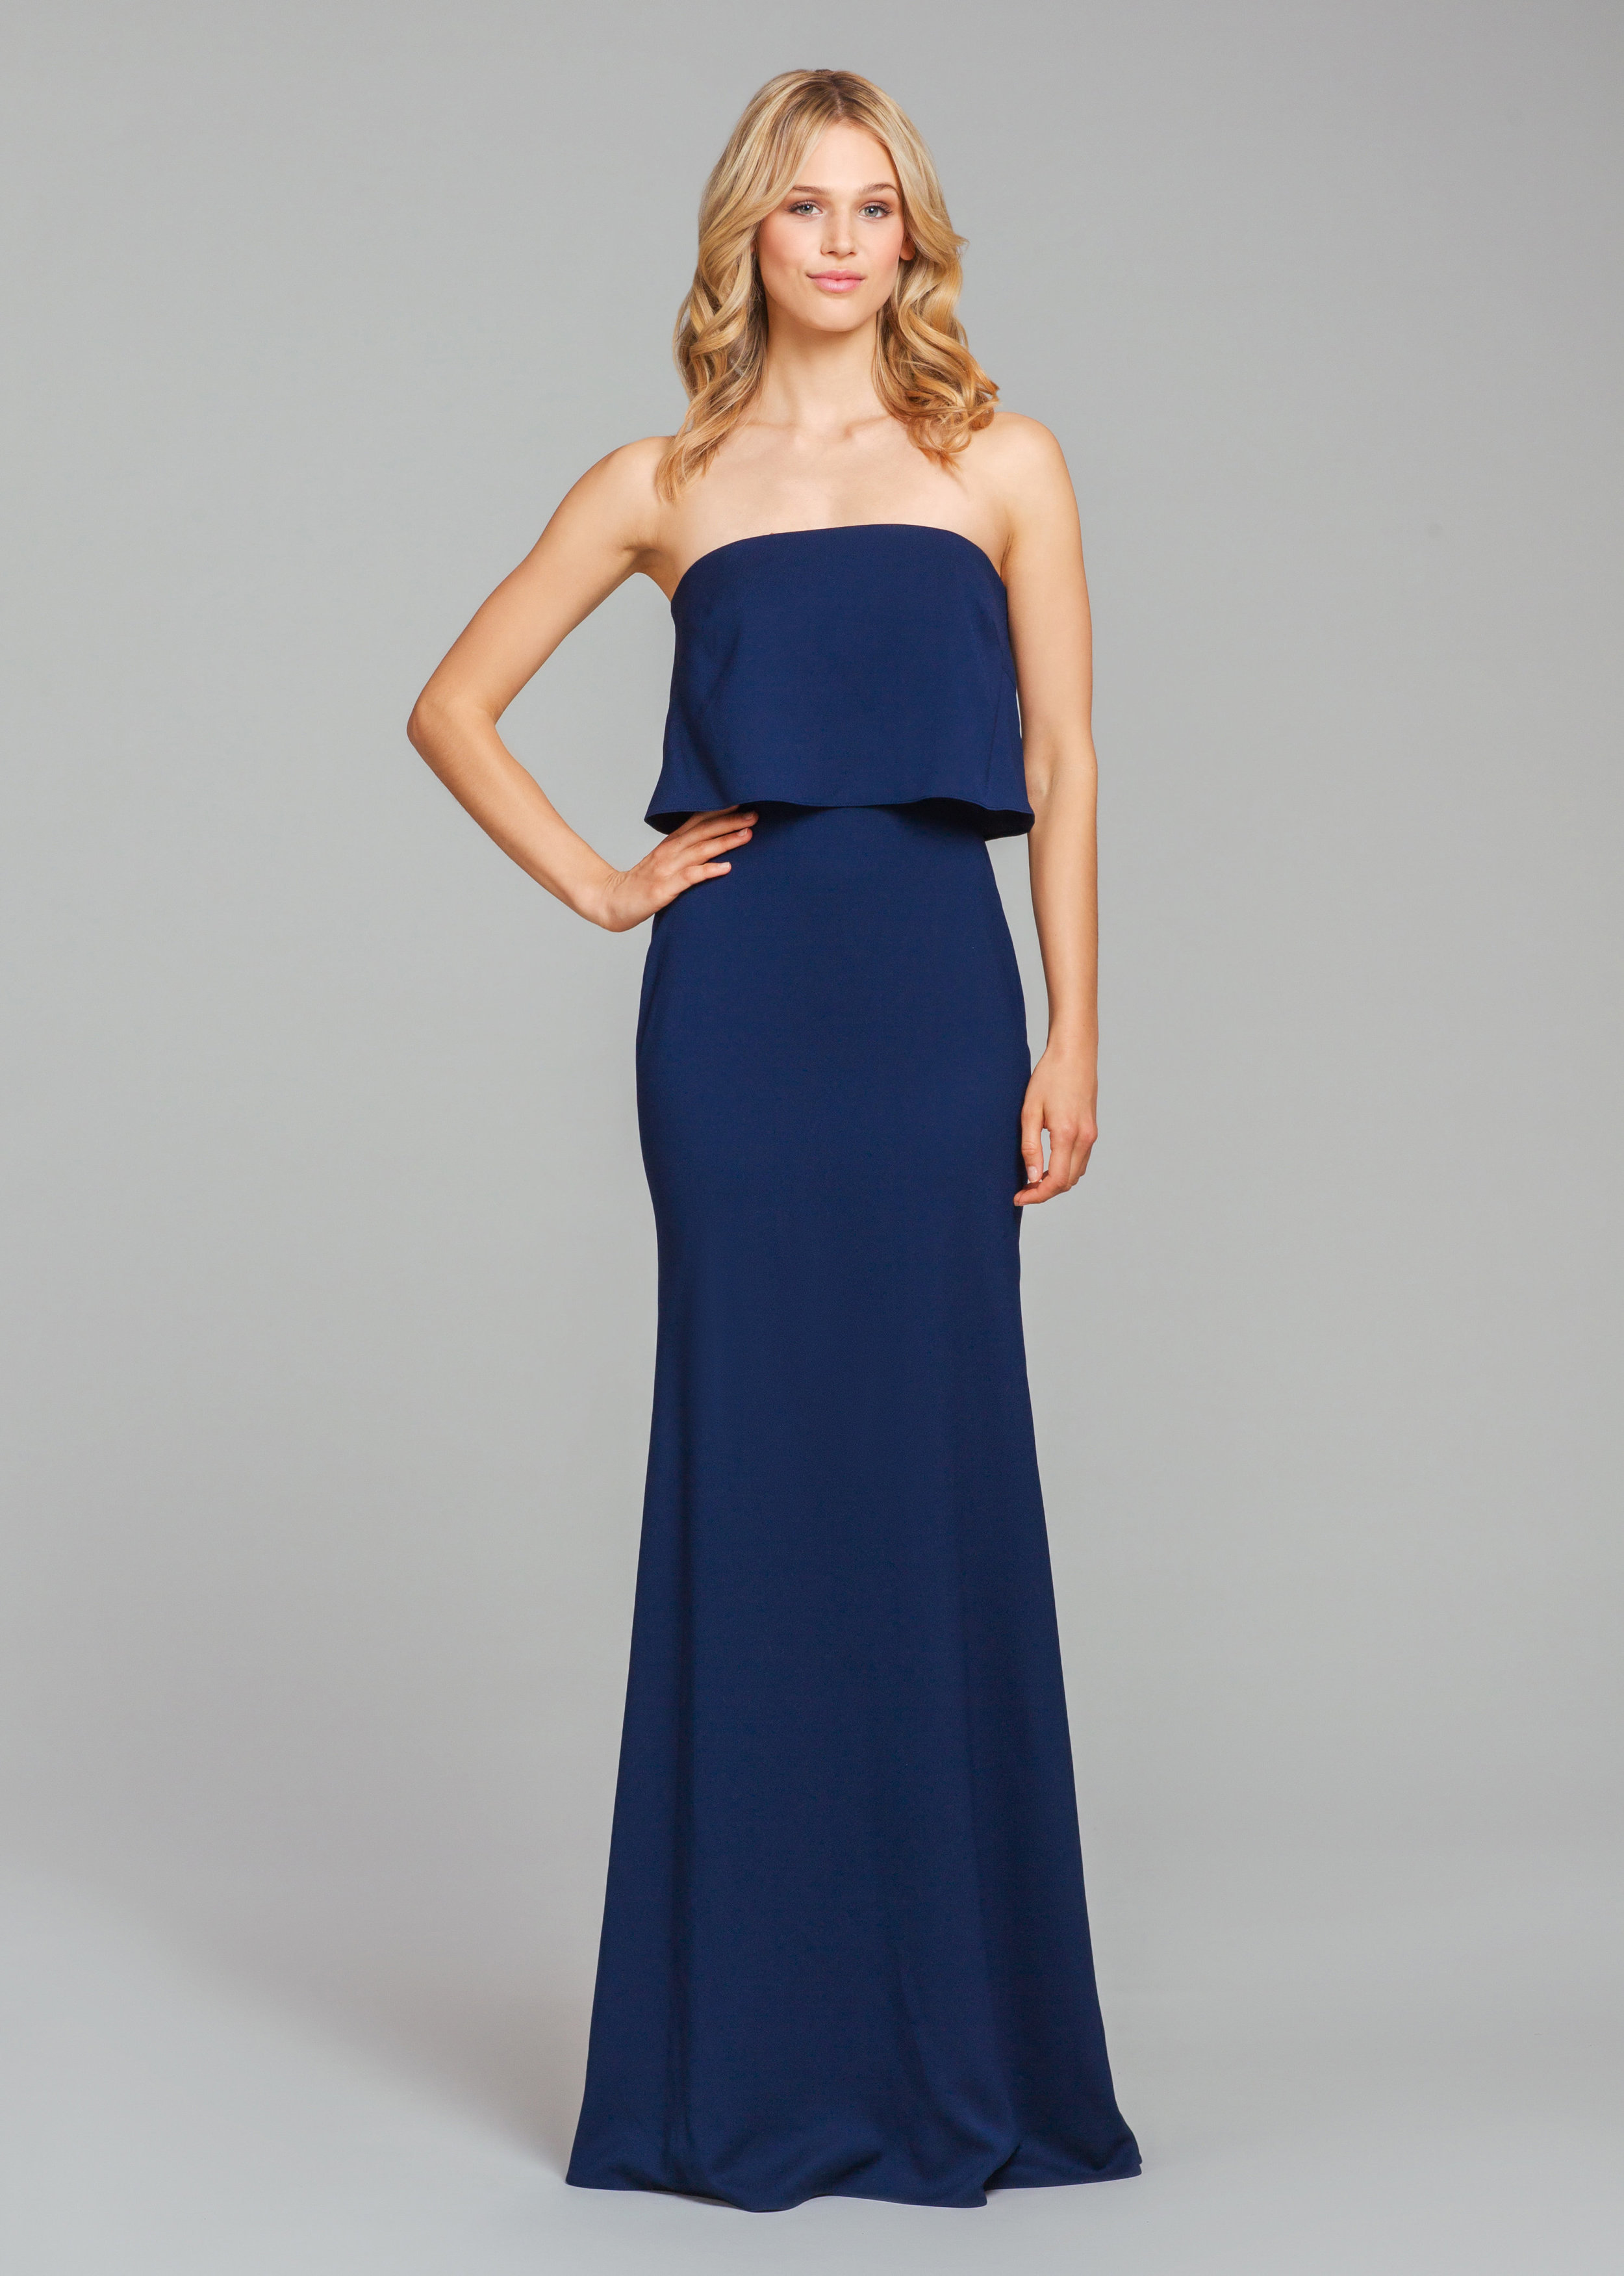 hayley-paige-occasions-bridesmaids-fall-2018-style-5860.jpg